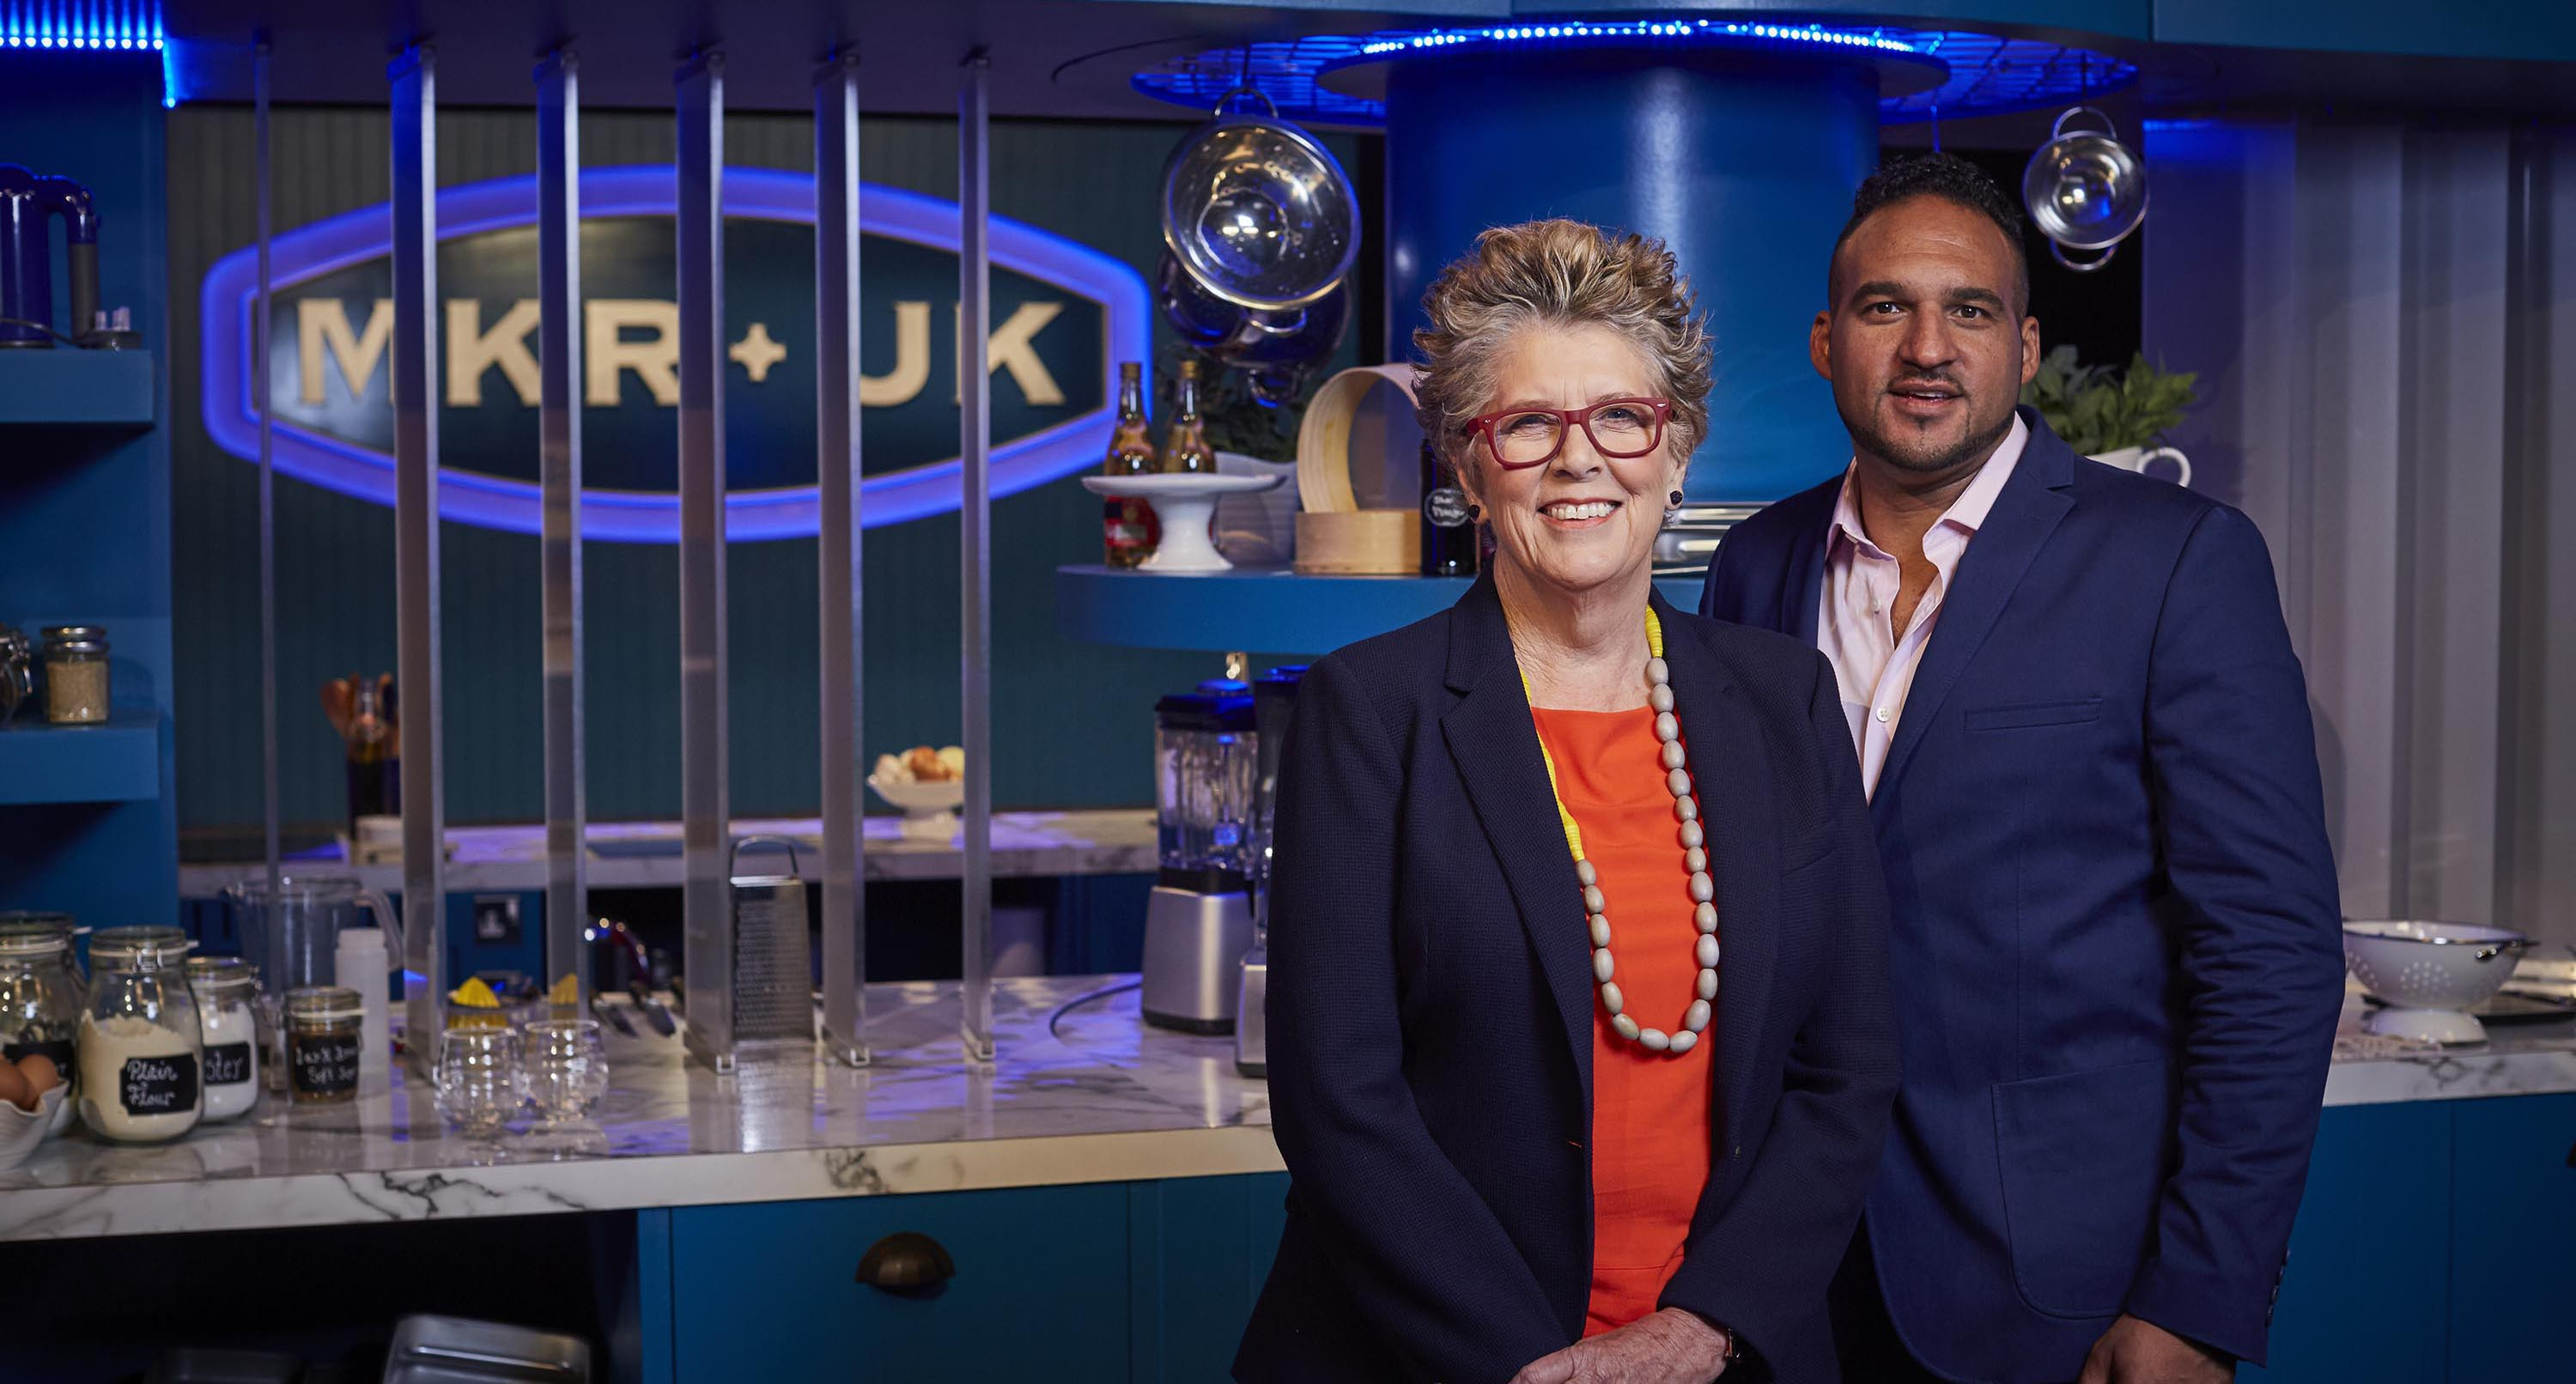 channel 4 serves up more my kitchen rules uk - channel 4 - info